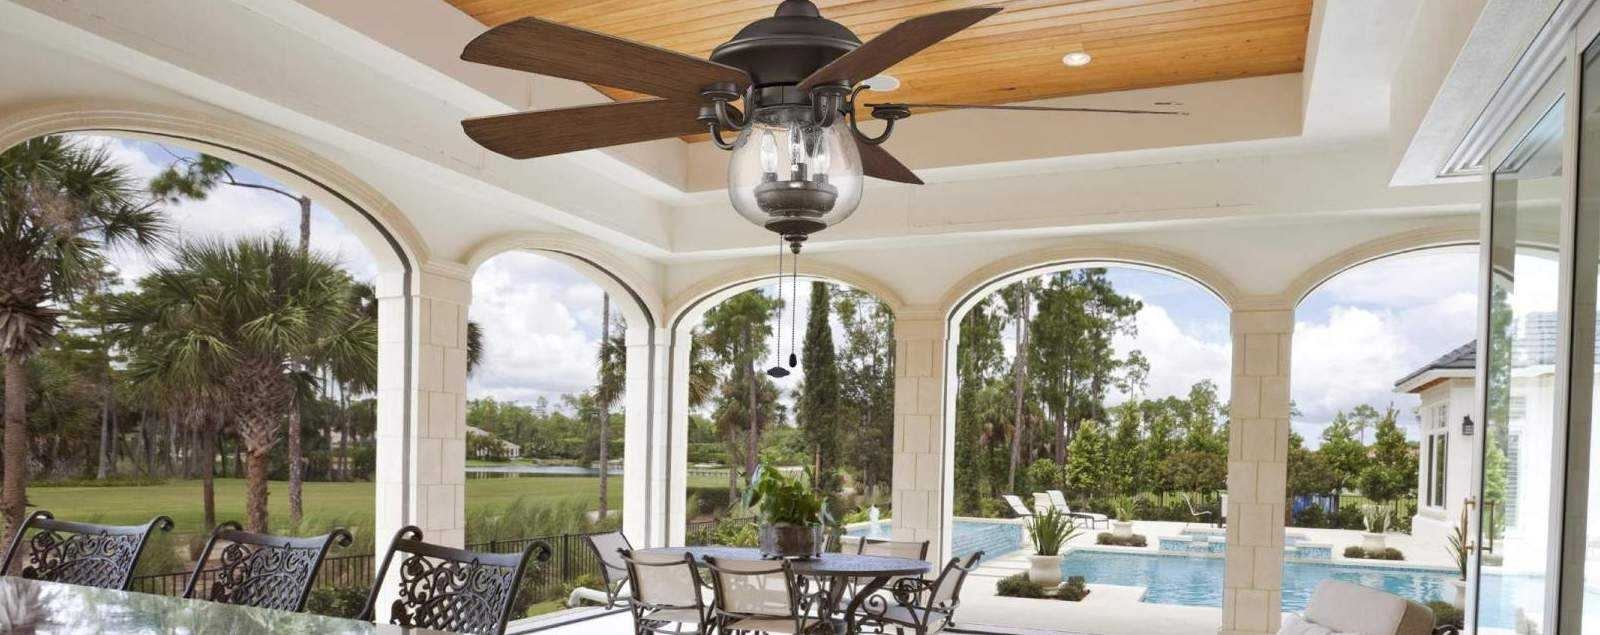 Outdoor Ceiling Fans Hansen Ideas With Incredible Exterior For Throughout Best And Newest Outdoor Ceiling Fans For Porch (View 8 of 20)